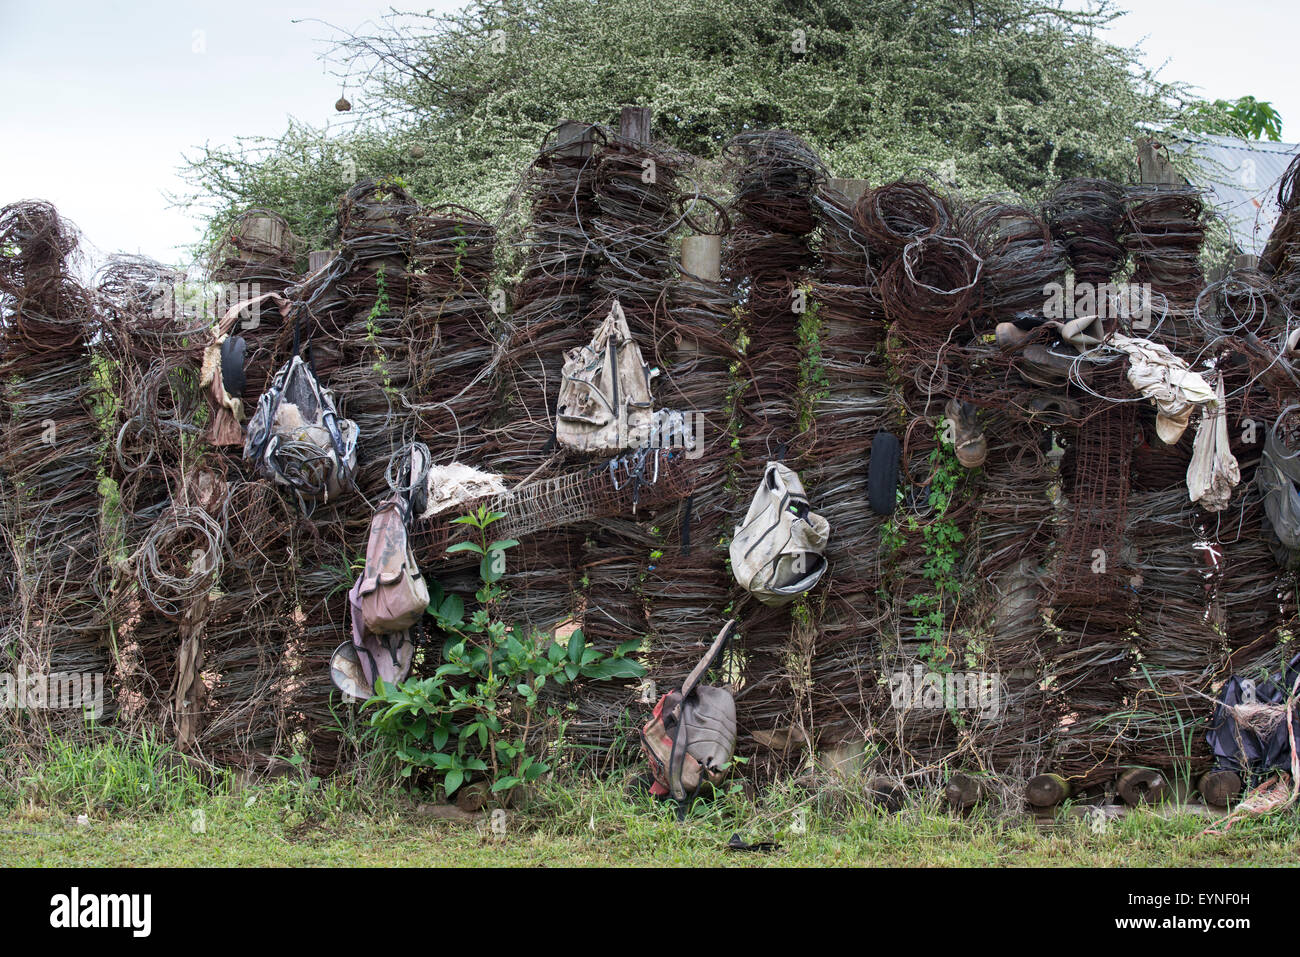 Display of wire snares and backpacks collected from poachers in Hlane National Park, Swaziland Stock Photo